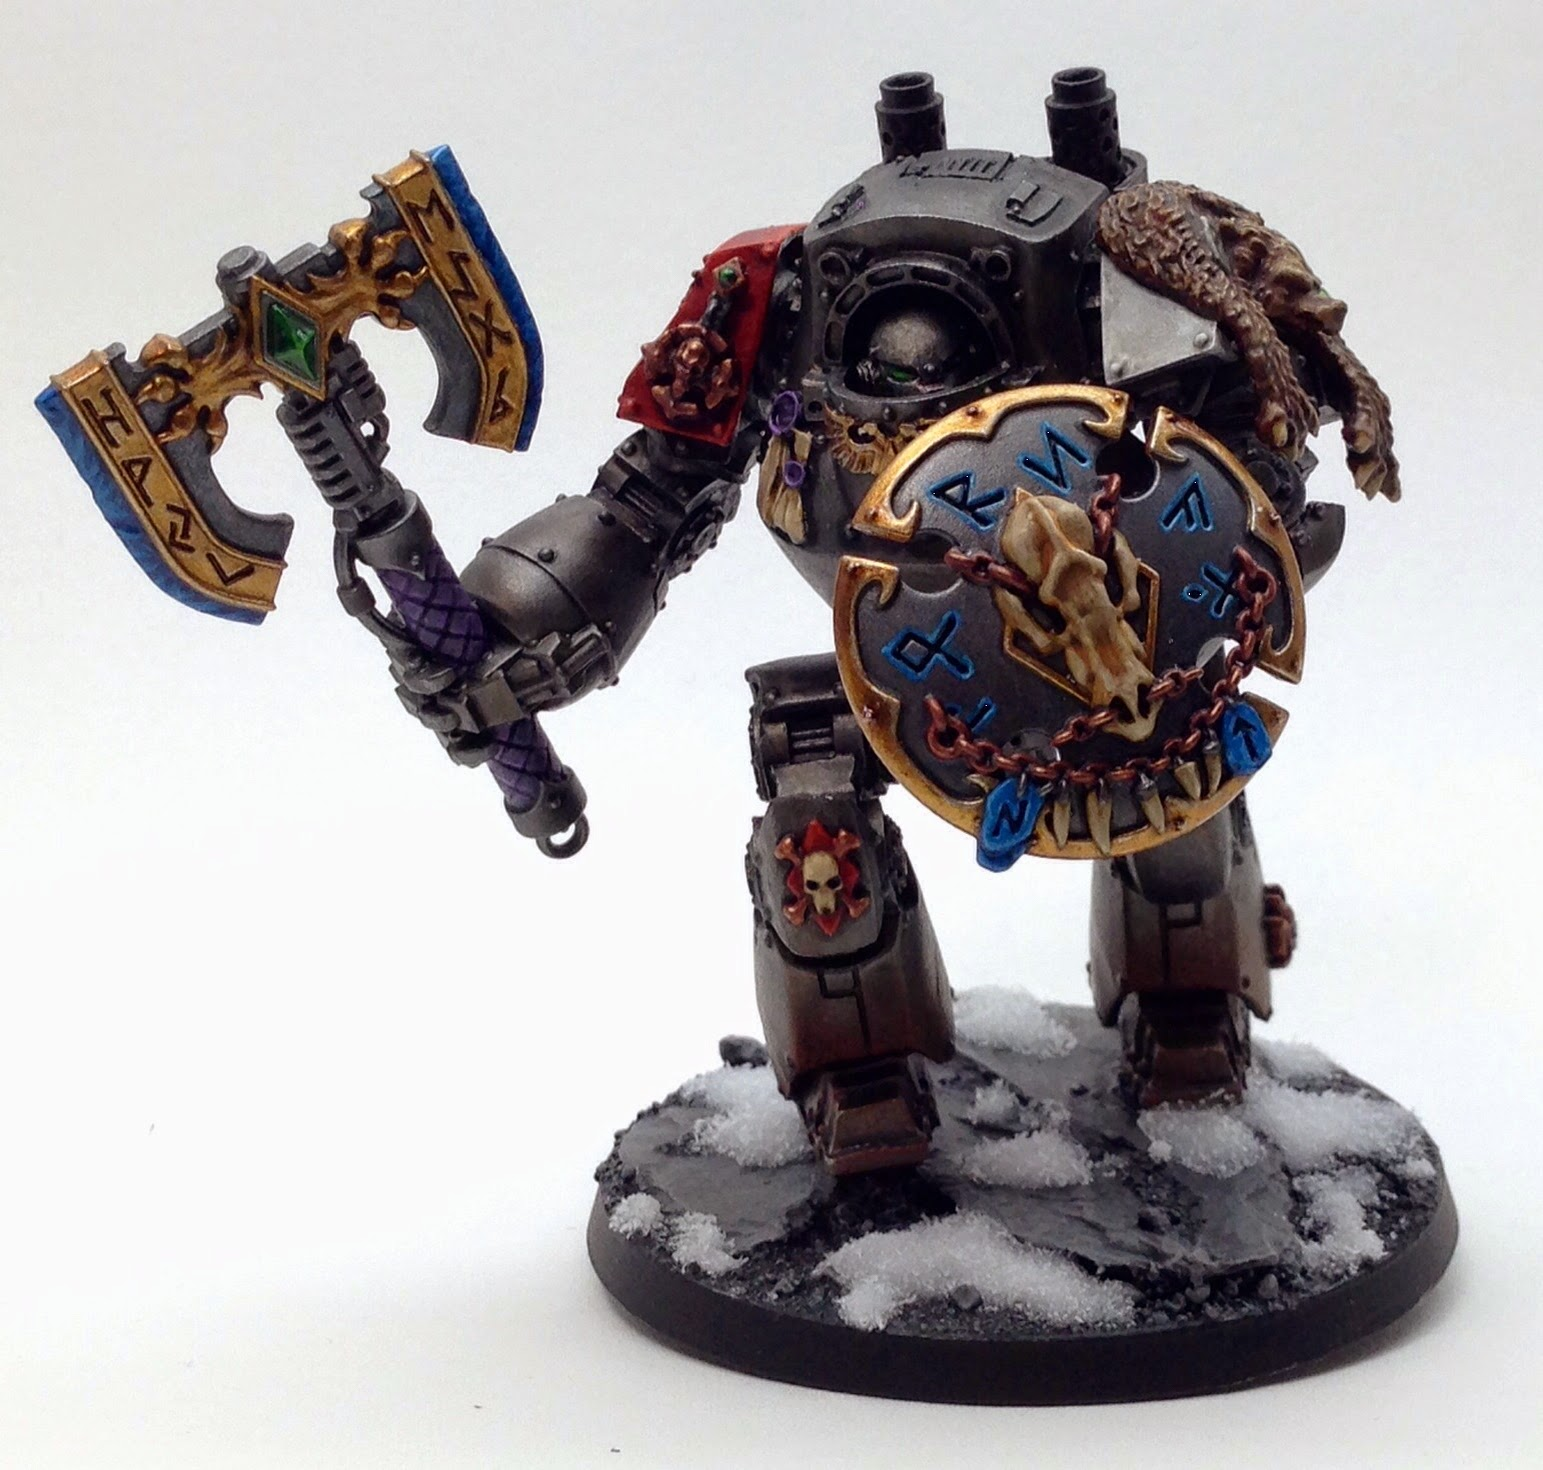 Space wolf dreadnought conversion with frost axe and blizzard shield